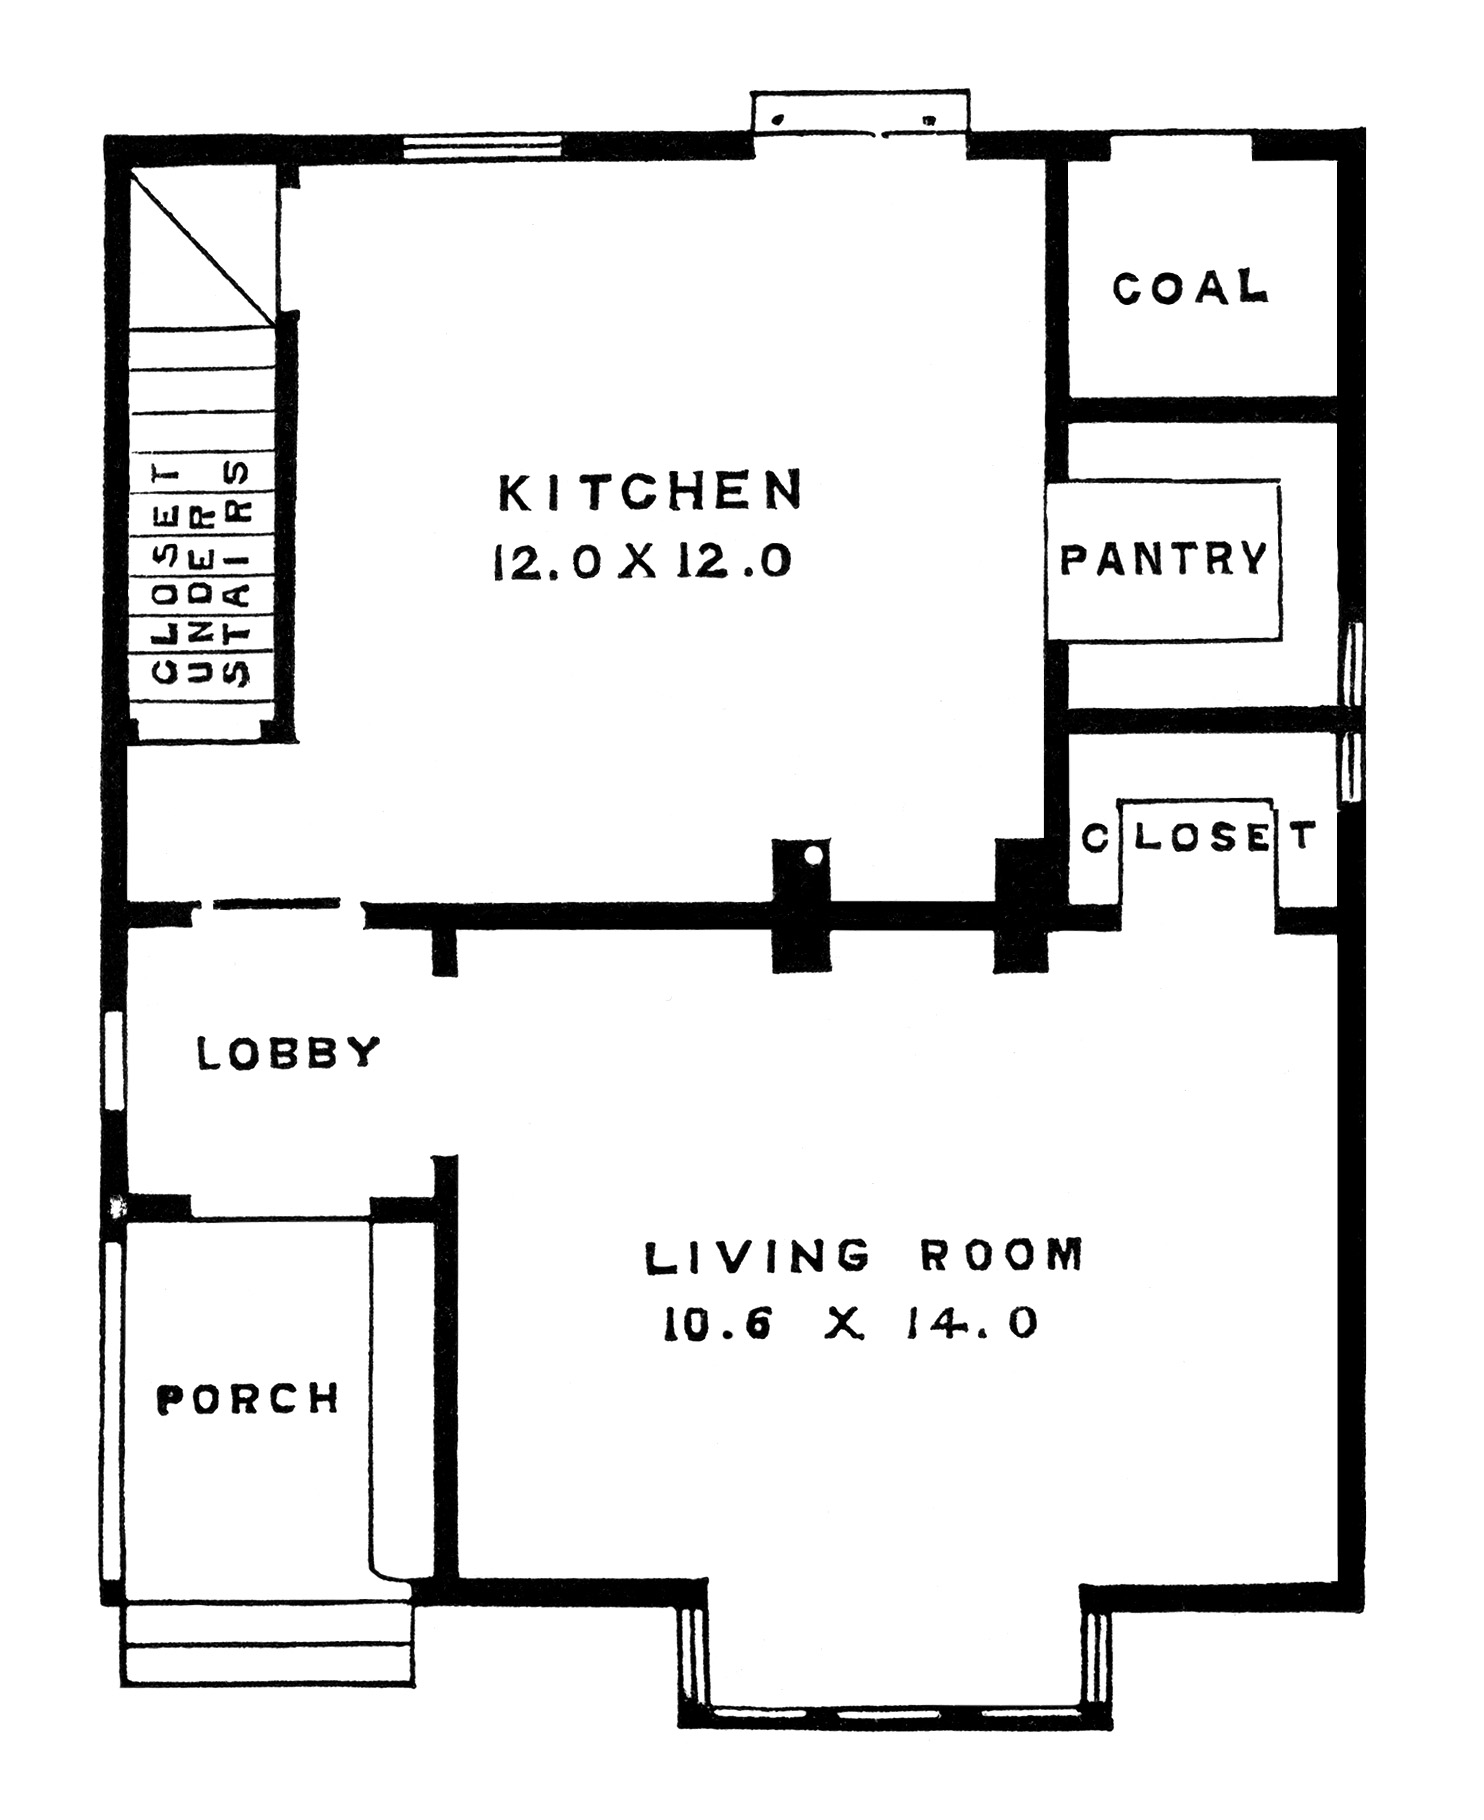 Two Story Victorian Cottage Free Clip Art Image on Cottage House Plans Open Floor Plan